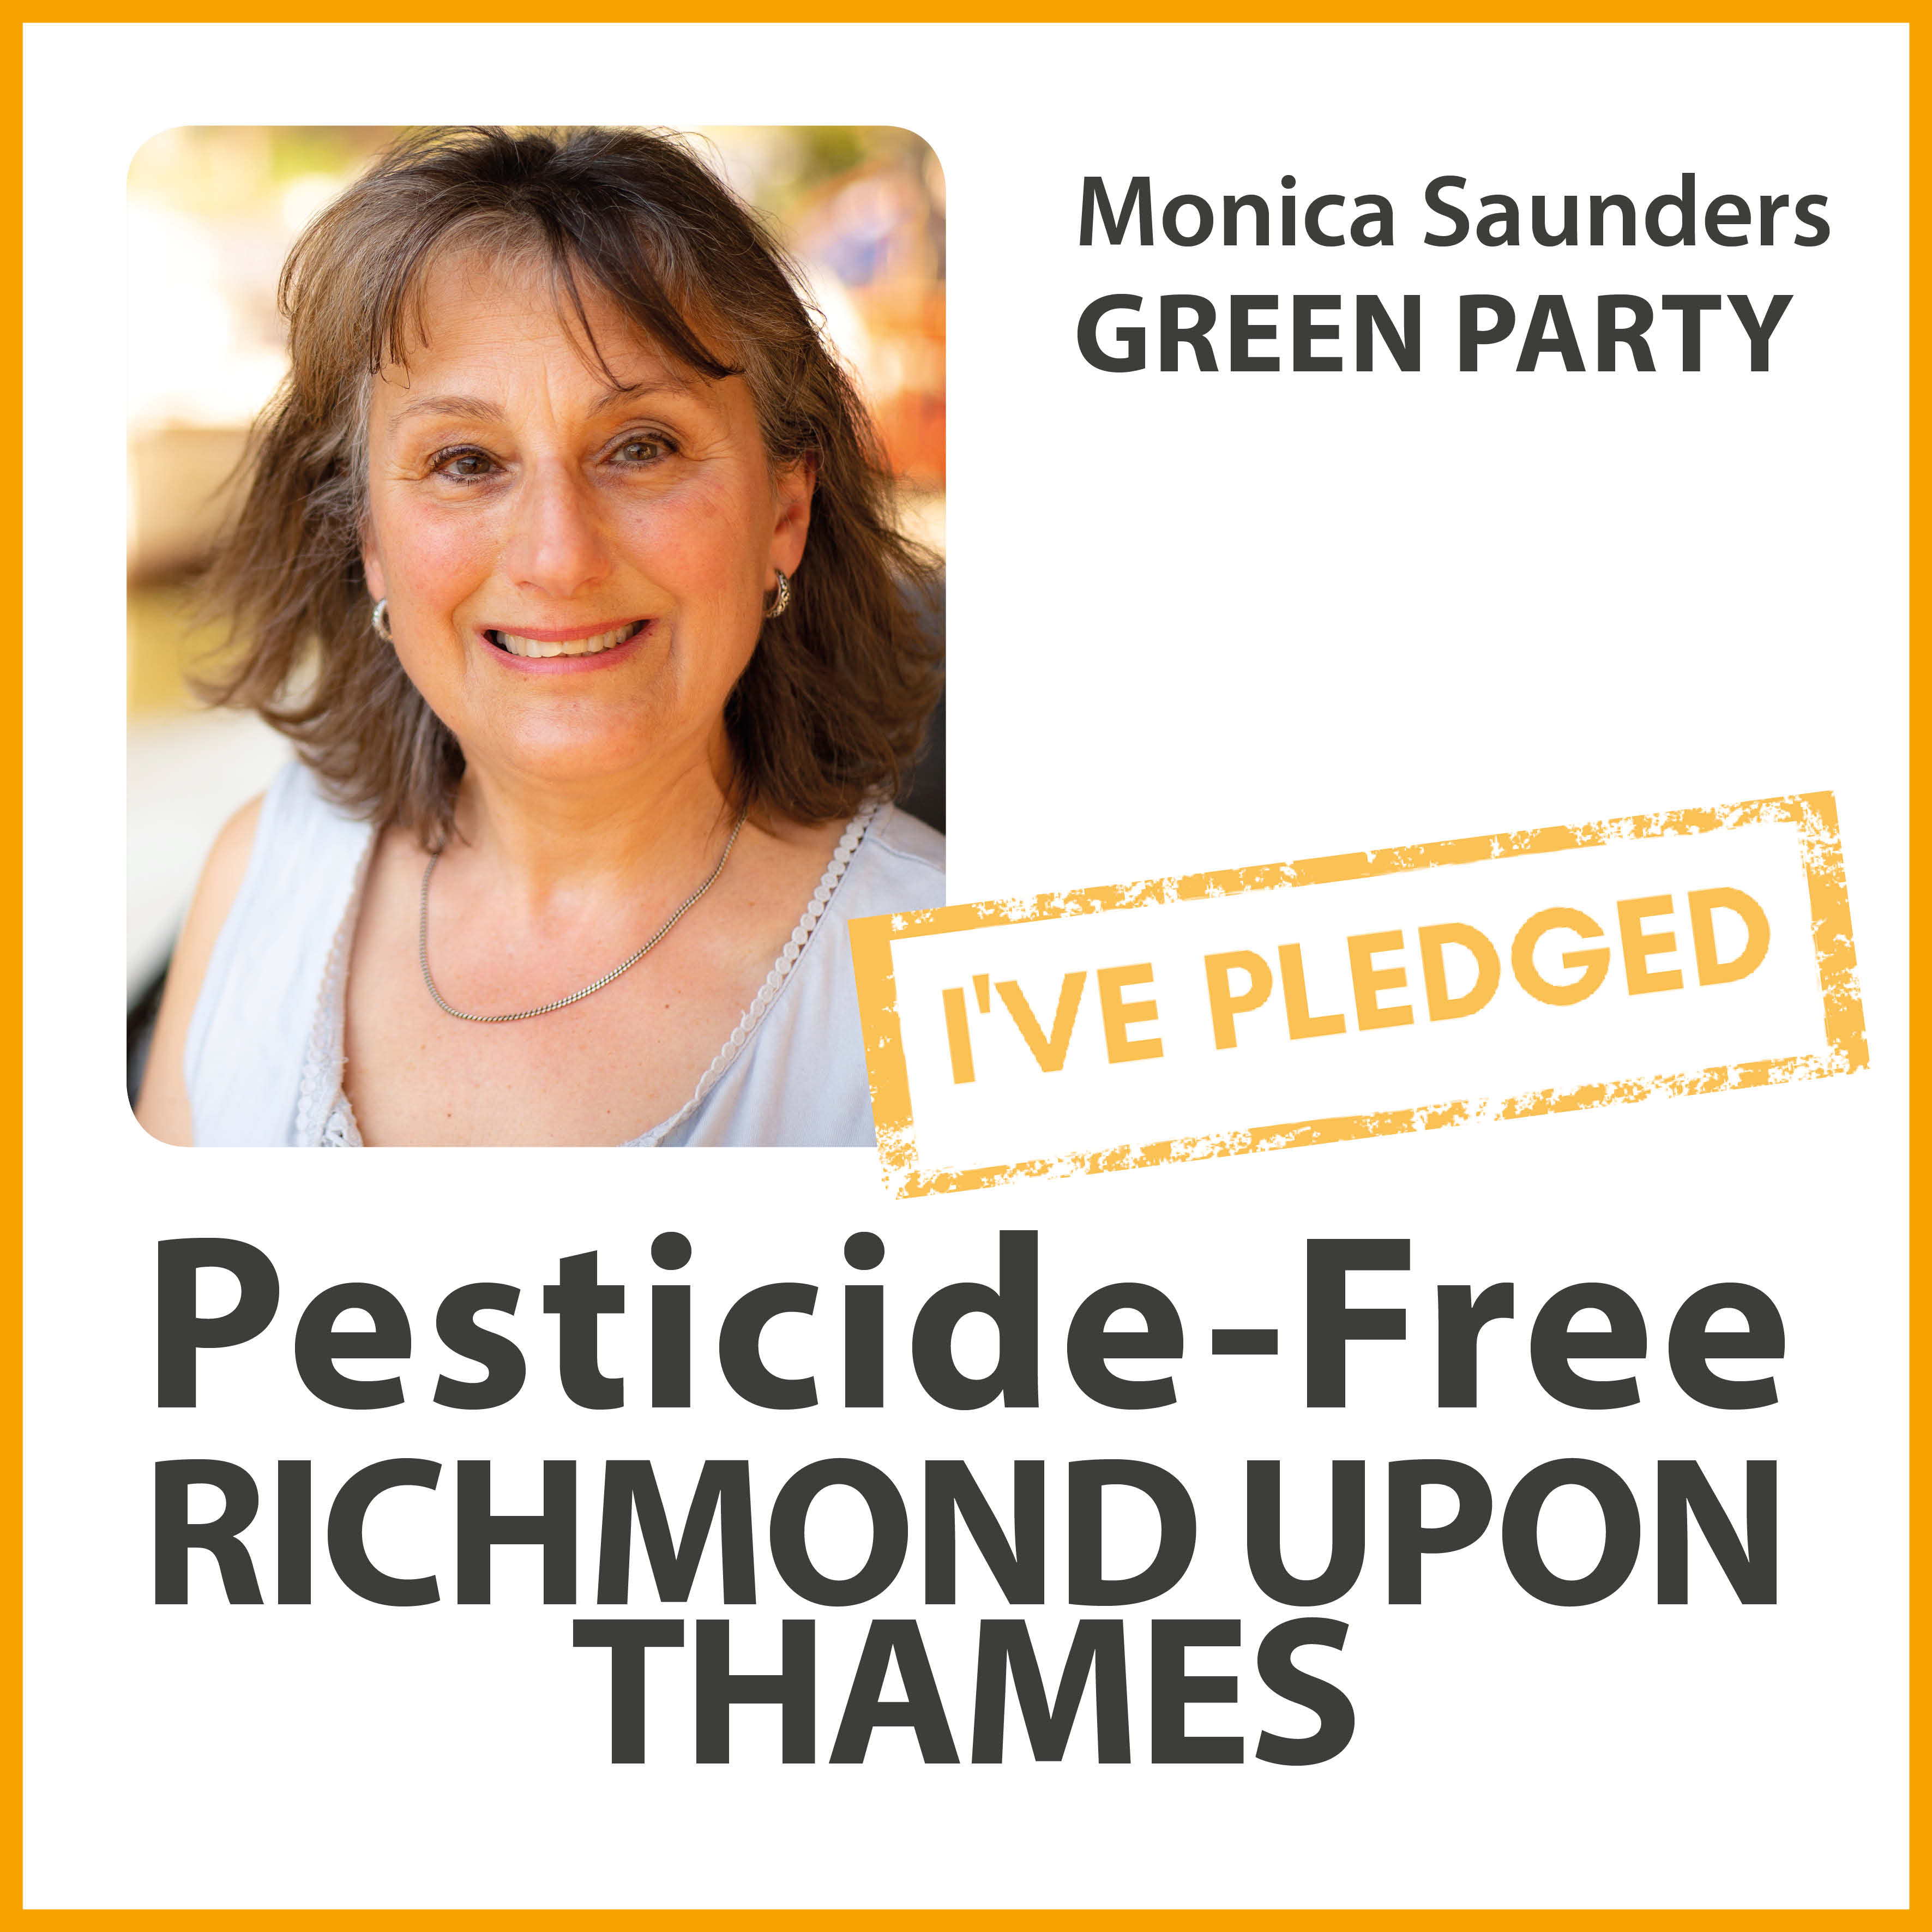 Monica Saunders has taken the pesticide-free pledge in Richmond